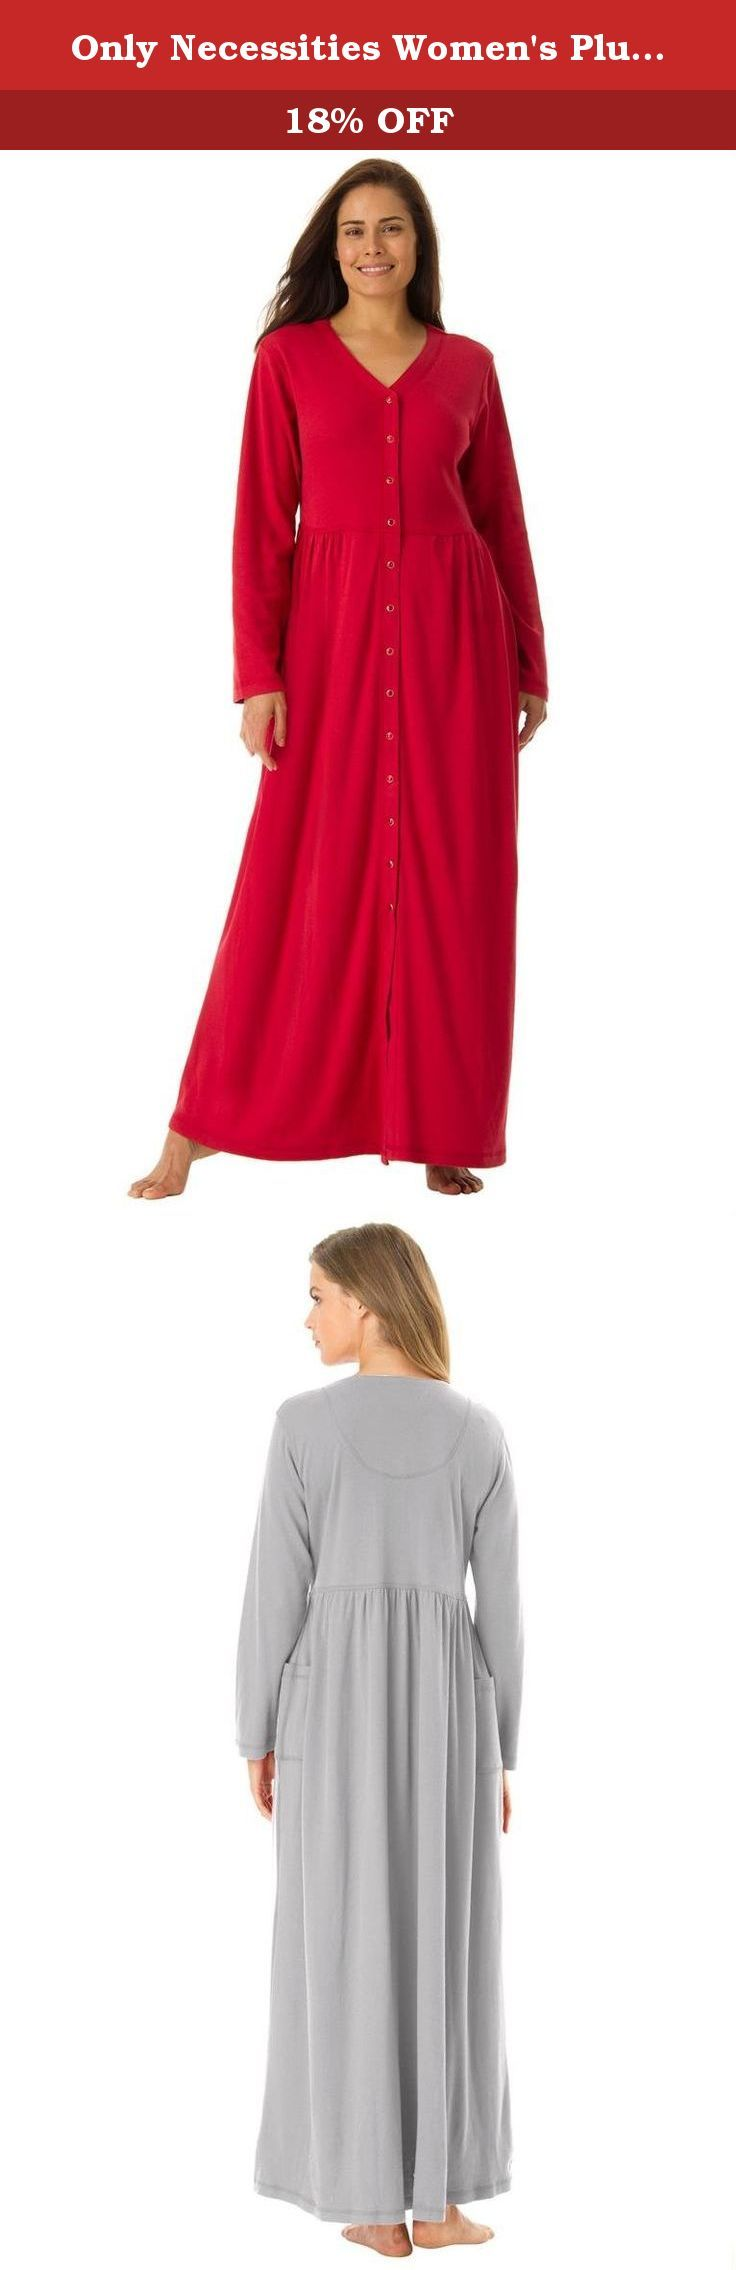 """Only Necessities Women's Plus Size Long Knit Lounger Classic Red,2X. is beautiful and flattering, with lots of room to move. Woman Within provides the most comfortable fit in plus size sleepwear. Tagfree Long sleeves V-neck Snap front Shirred empire waist 2 patch pockets Full sweep skirt 52"""" long Washable polyester/cotton knit, USA or imported Women's plus size robes & plus size sleepwear in sizes M(14W-16W), L(18W-20W), 1X(22W-24W), 2X(26W-28W), 3X(30W-32W), 4X(34W-36W), 5X(38W-4."""